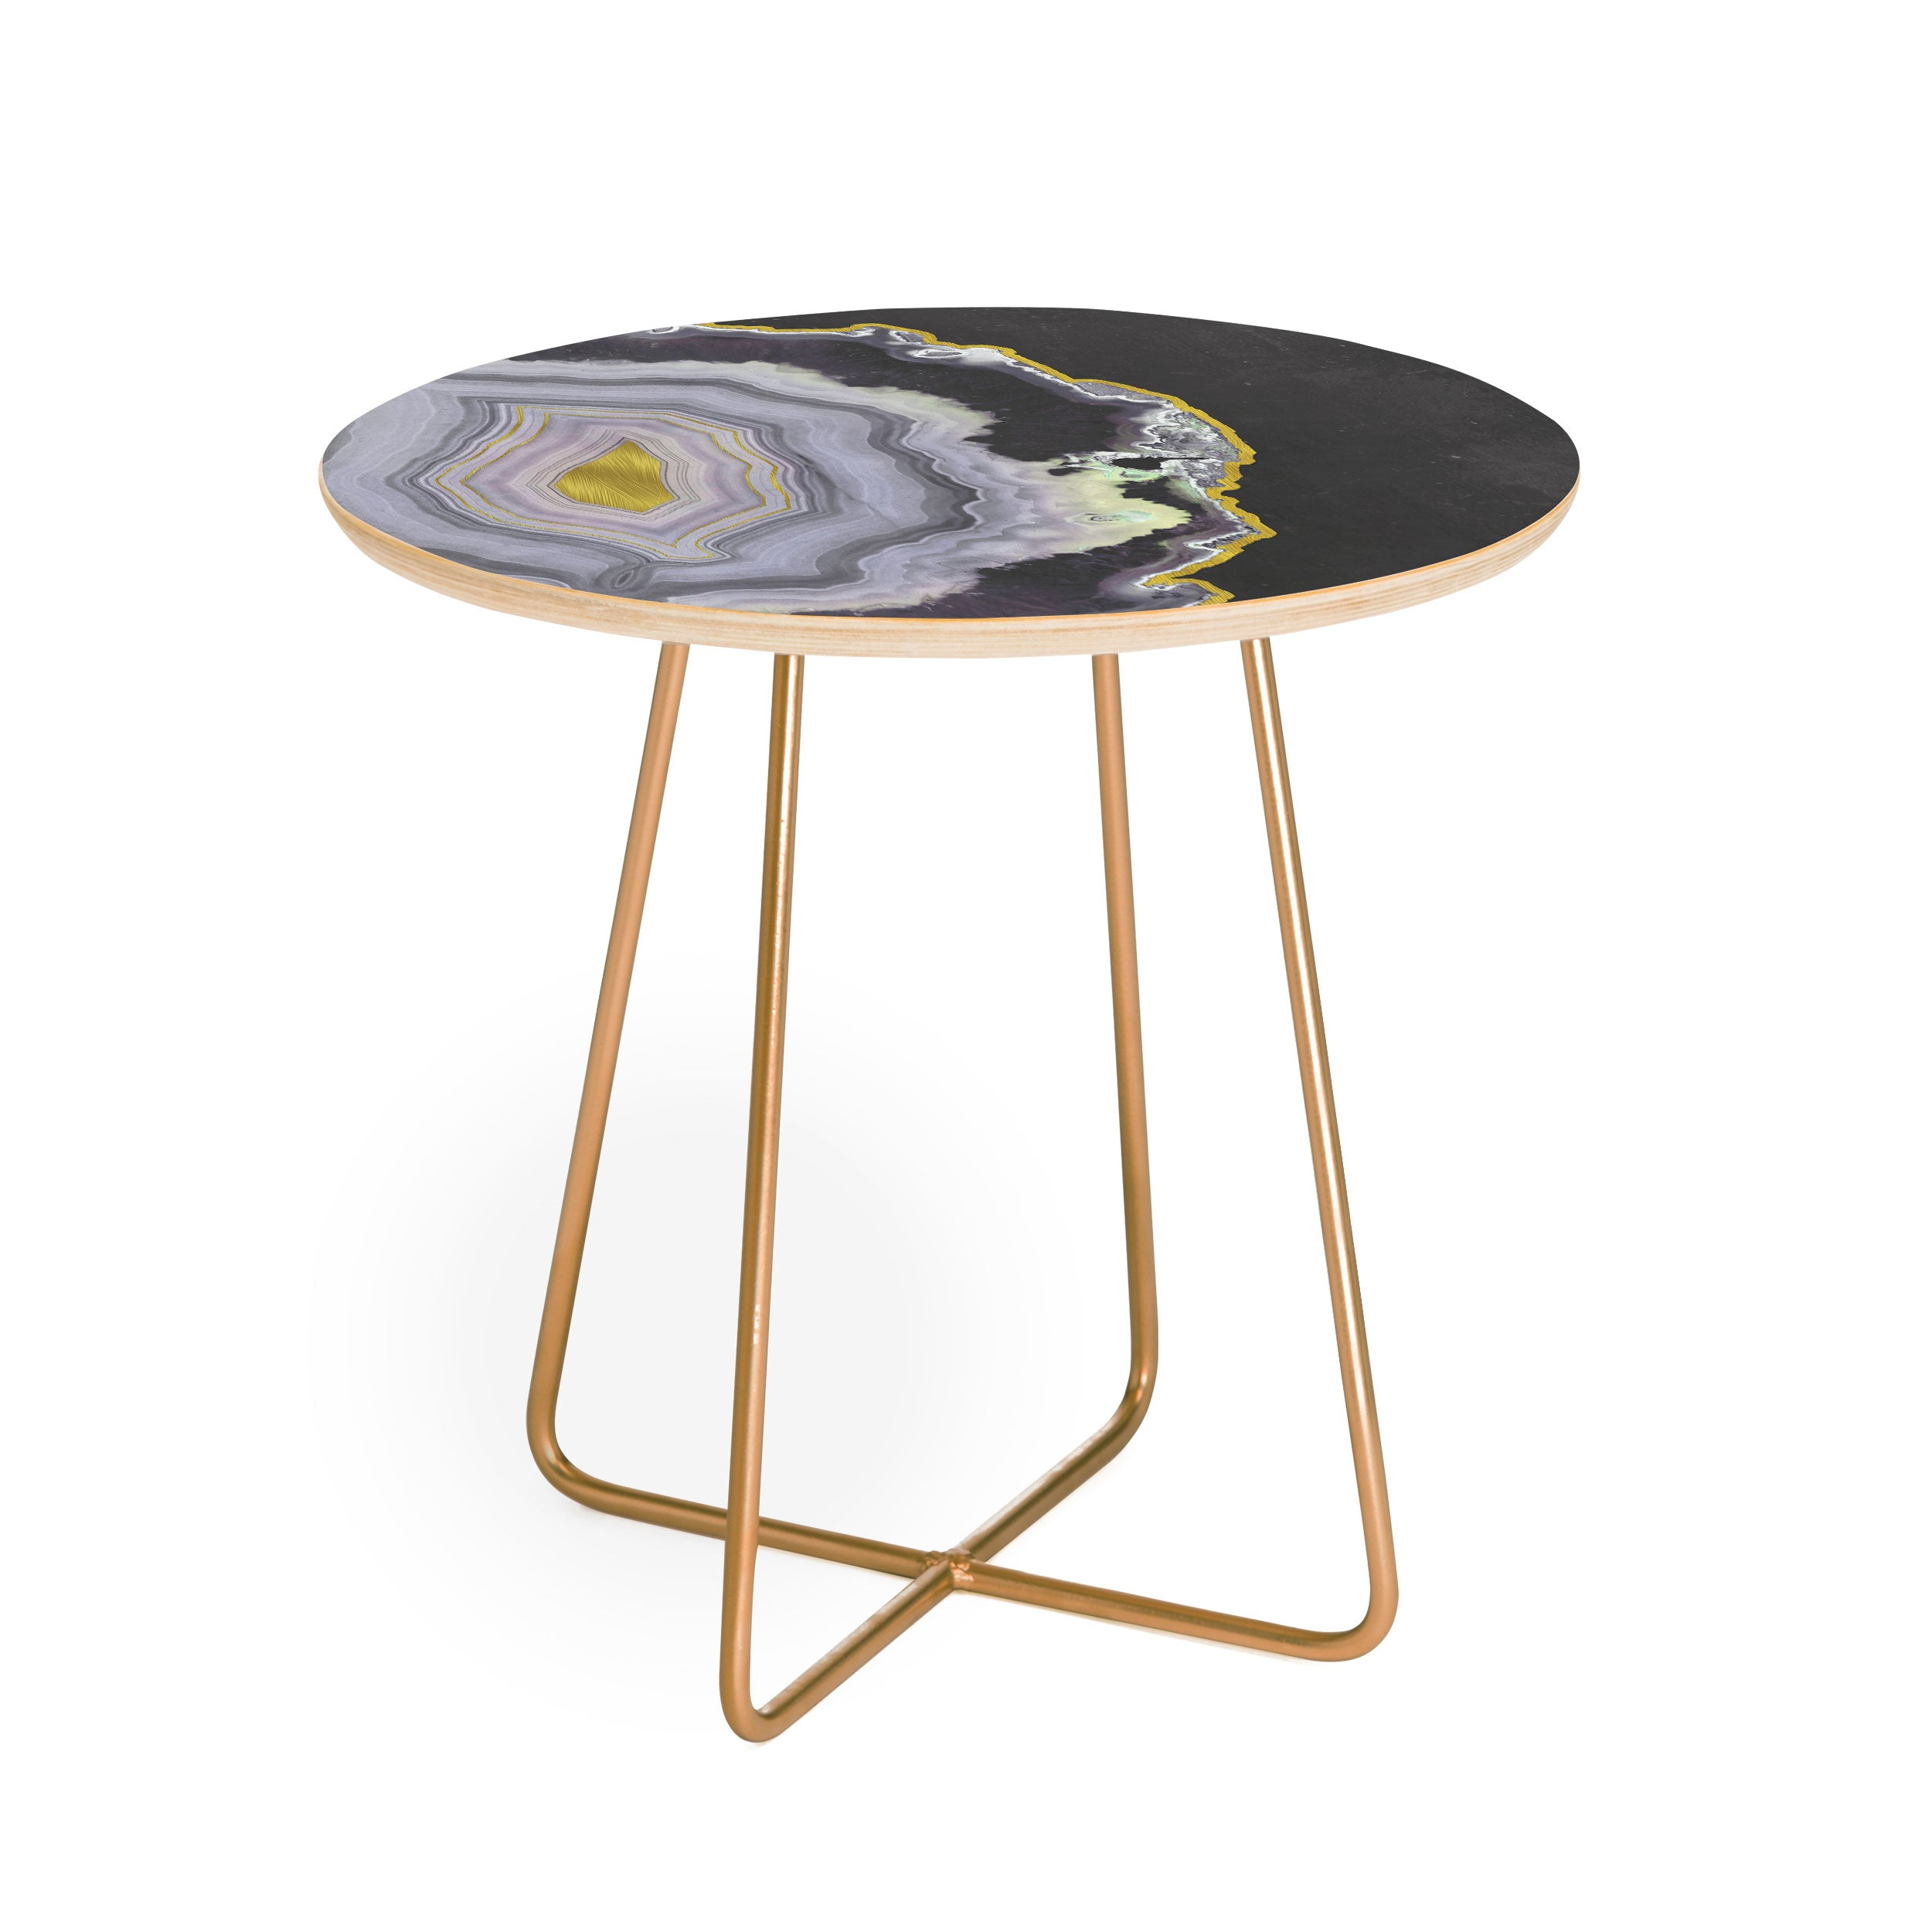 Emanuela Carratoni Black and Gold Agate Round Side Table